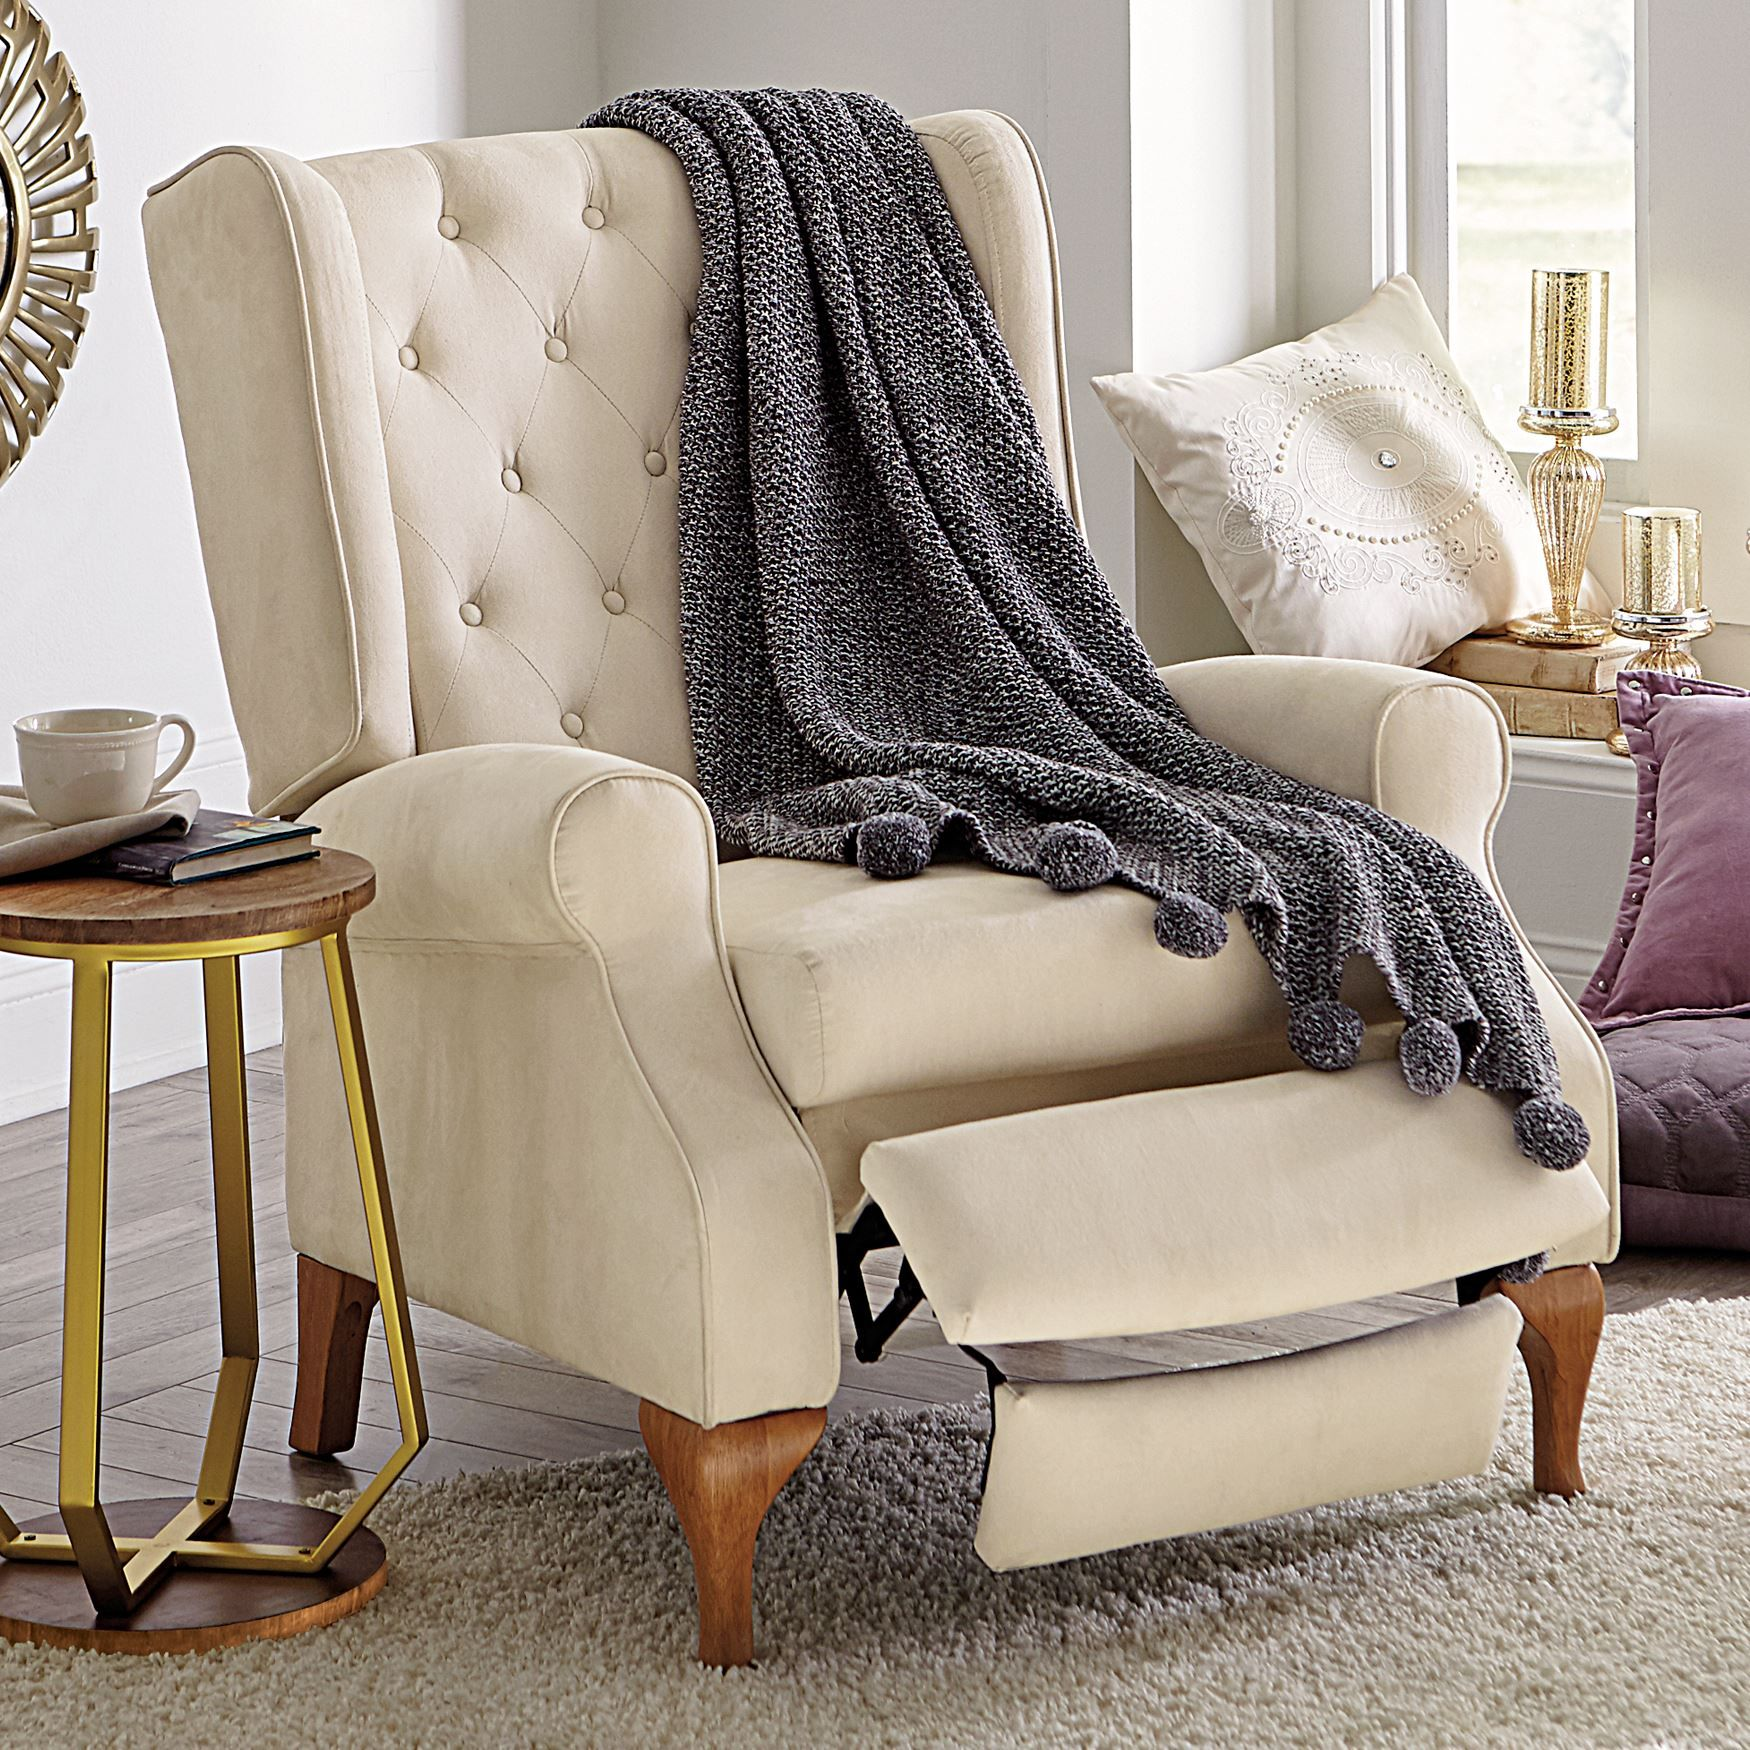 Queen Anne Wing Chair Recliner Unusual Chairs For Living Room Our Beautifully Crafted Style Tufted Wingback